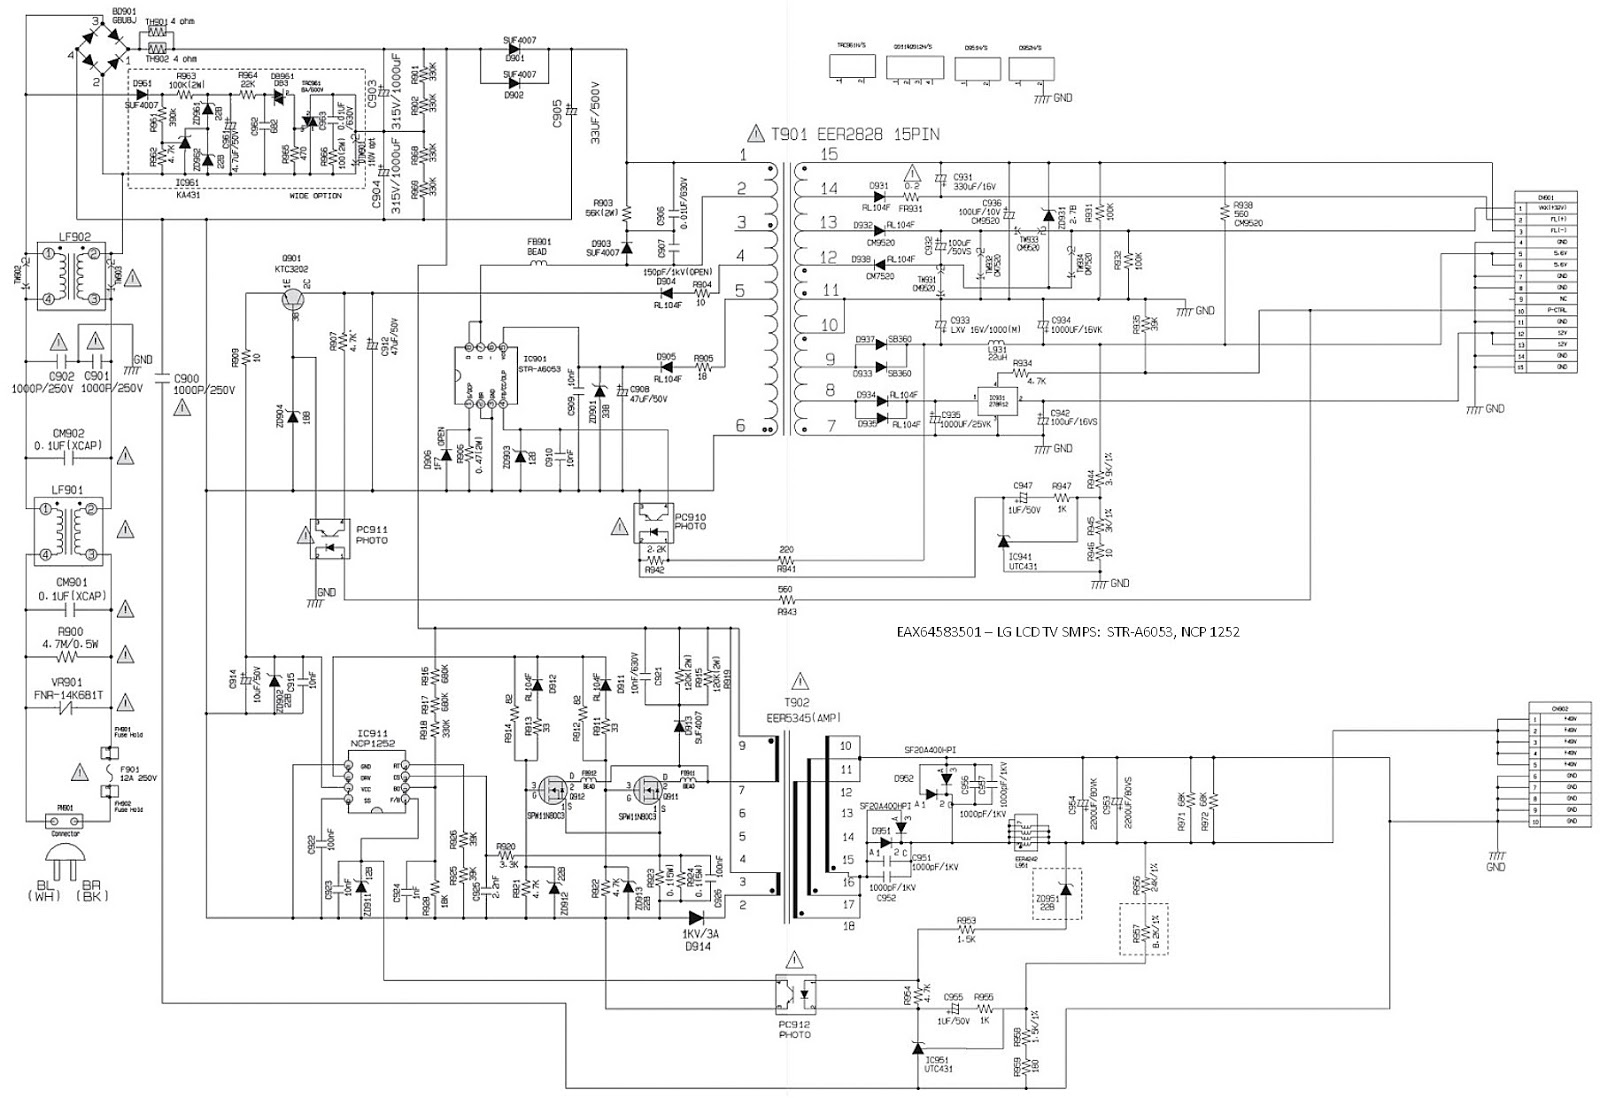 Schematic Diagrams  Eax64583501  U2013 Lg Lcd Tv Smps  Schematic